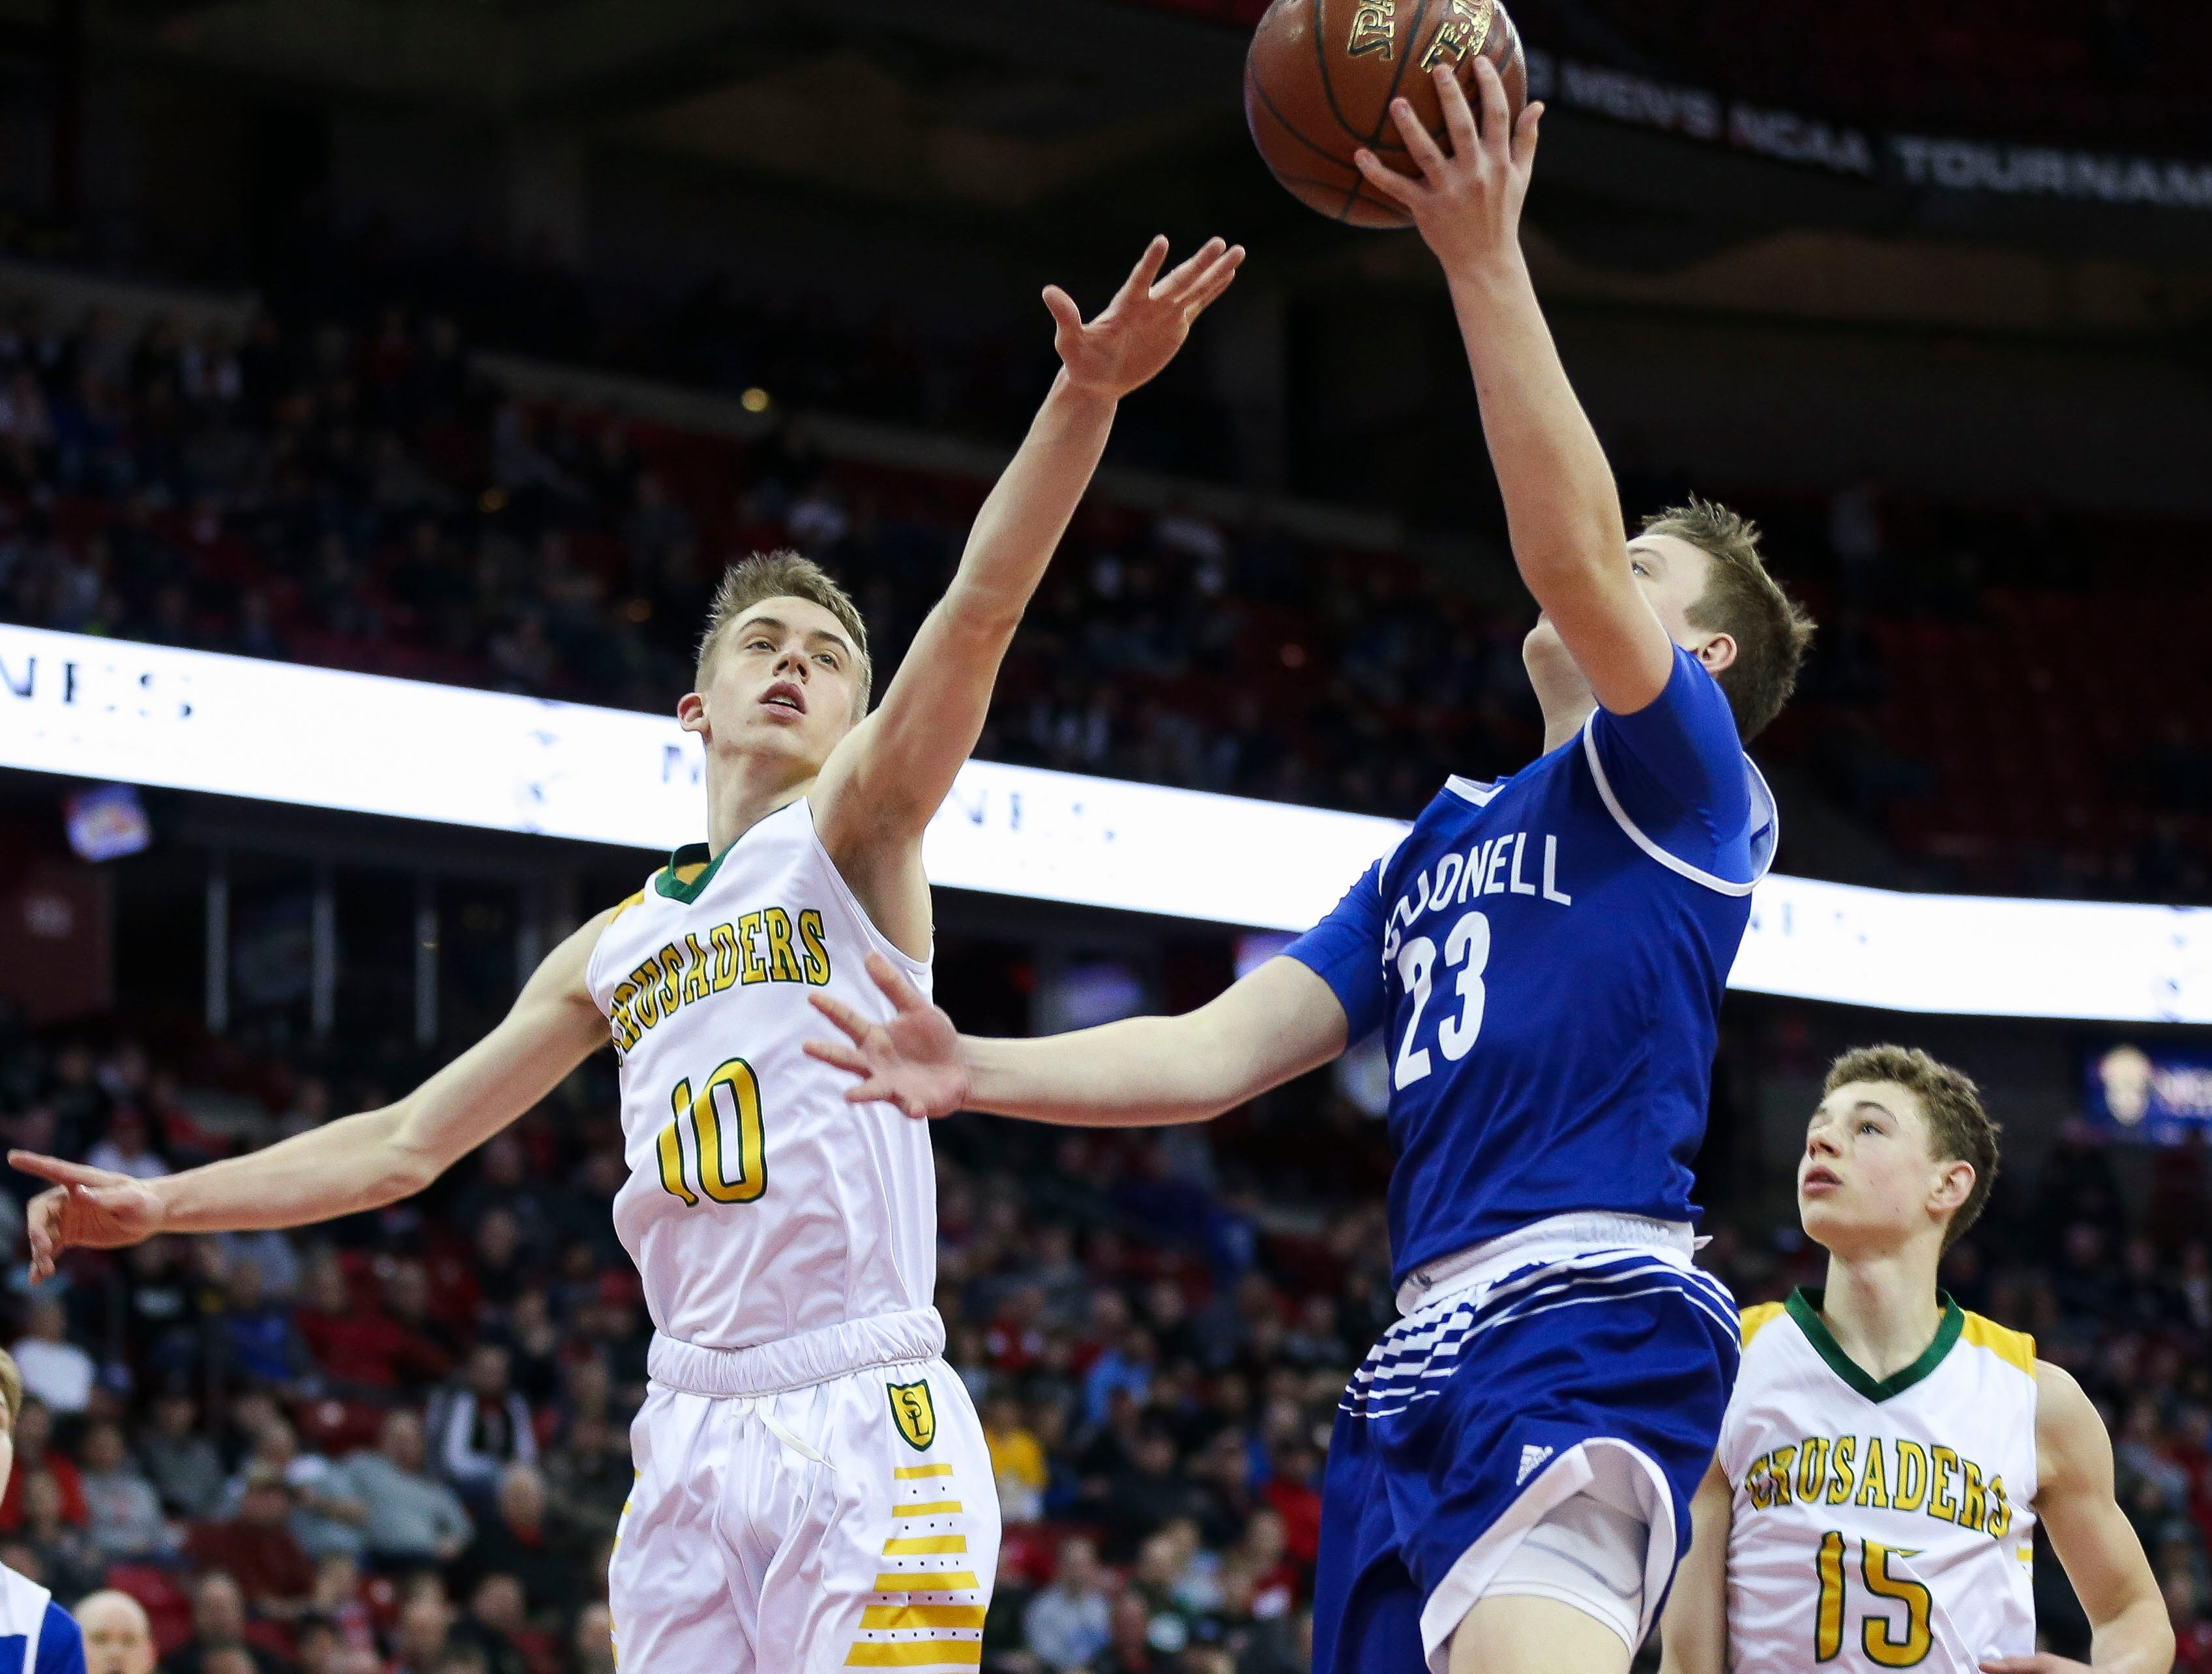 Sheboygan Lutheran High School's Graden Grabowski (10) contests a shot by McDonell Central Catholic High School's Logan Hughes (23) in a Division 5 boys basketball state semifinal on Friday, March 15, 2019, at the Kohl Center in Madison, Wis.